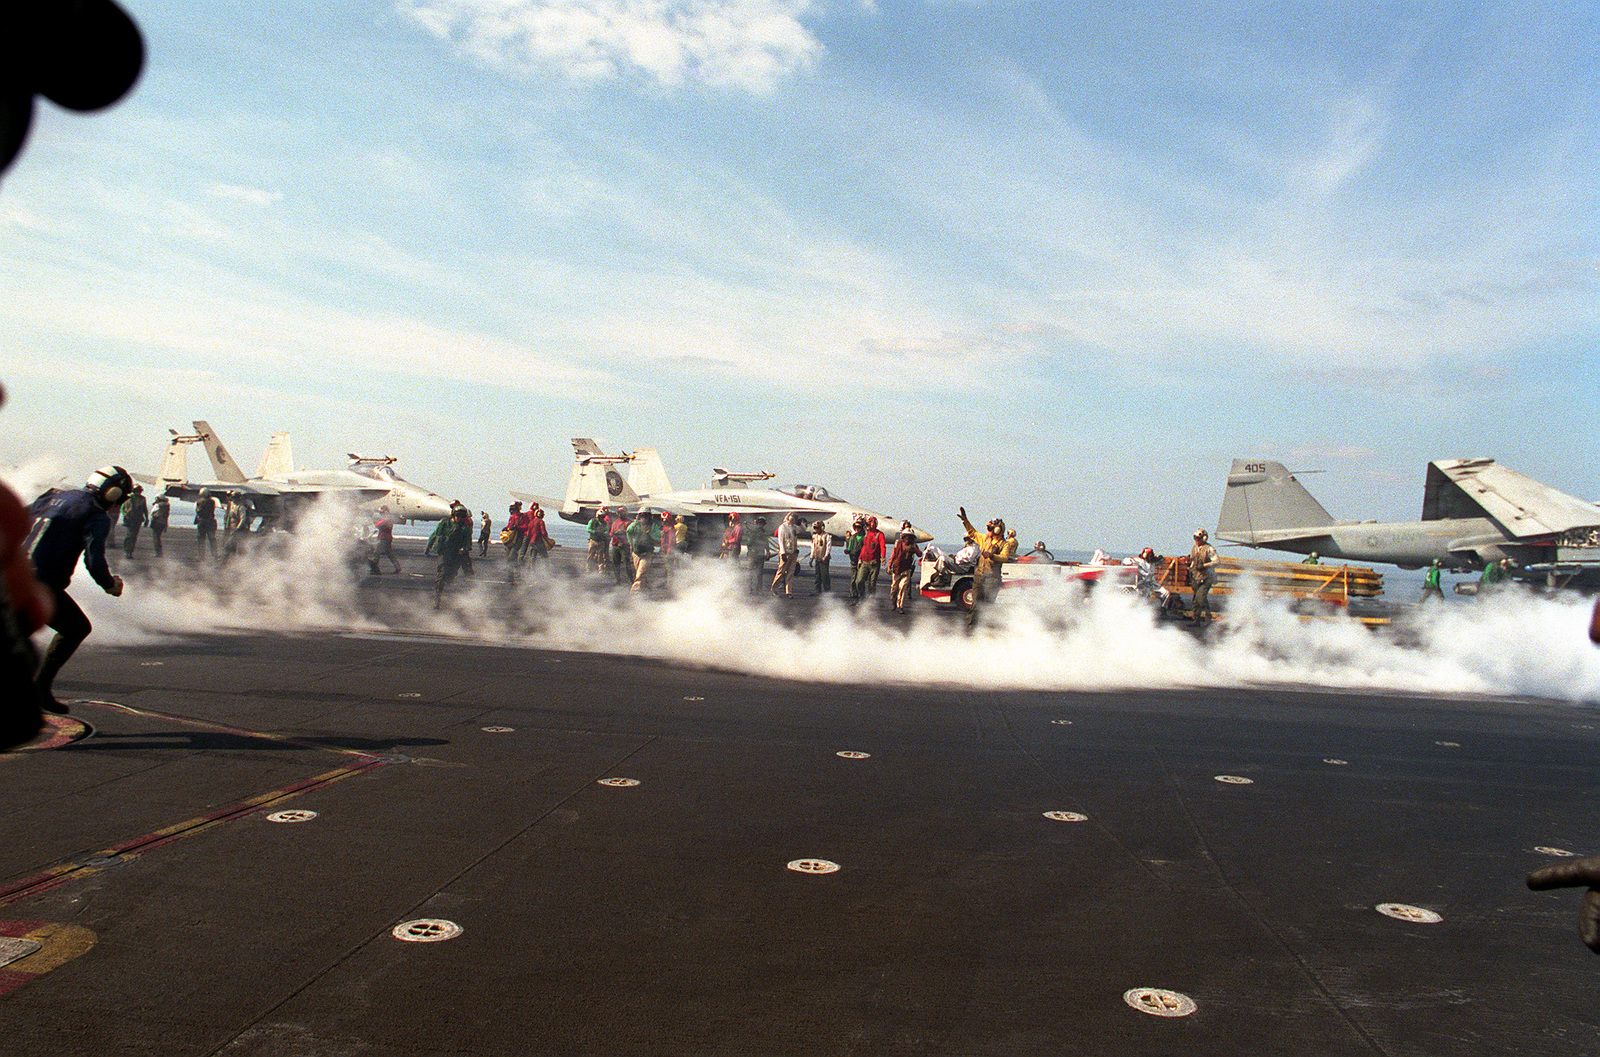 Steam rises from a catapult track on the flight deck of the aircraft carrier USS MIDWAY (CV-41) following the launch of an aircraft during Operation Desert Shield. In the background are F/A-18A Hornet aircraft from Strike Fighter Squadron 192 (VFA-192), left, and Strike Fighter Squadron 151 (VFA-151), center. An Attack Squadron 185 (VA-185) A-6E Intruder aircraft is at right